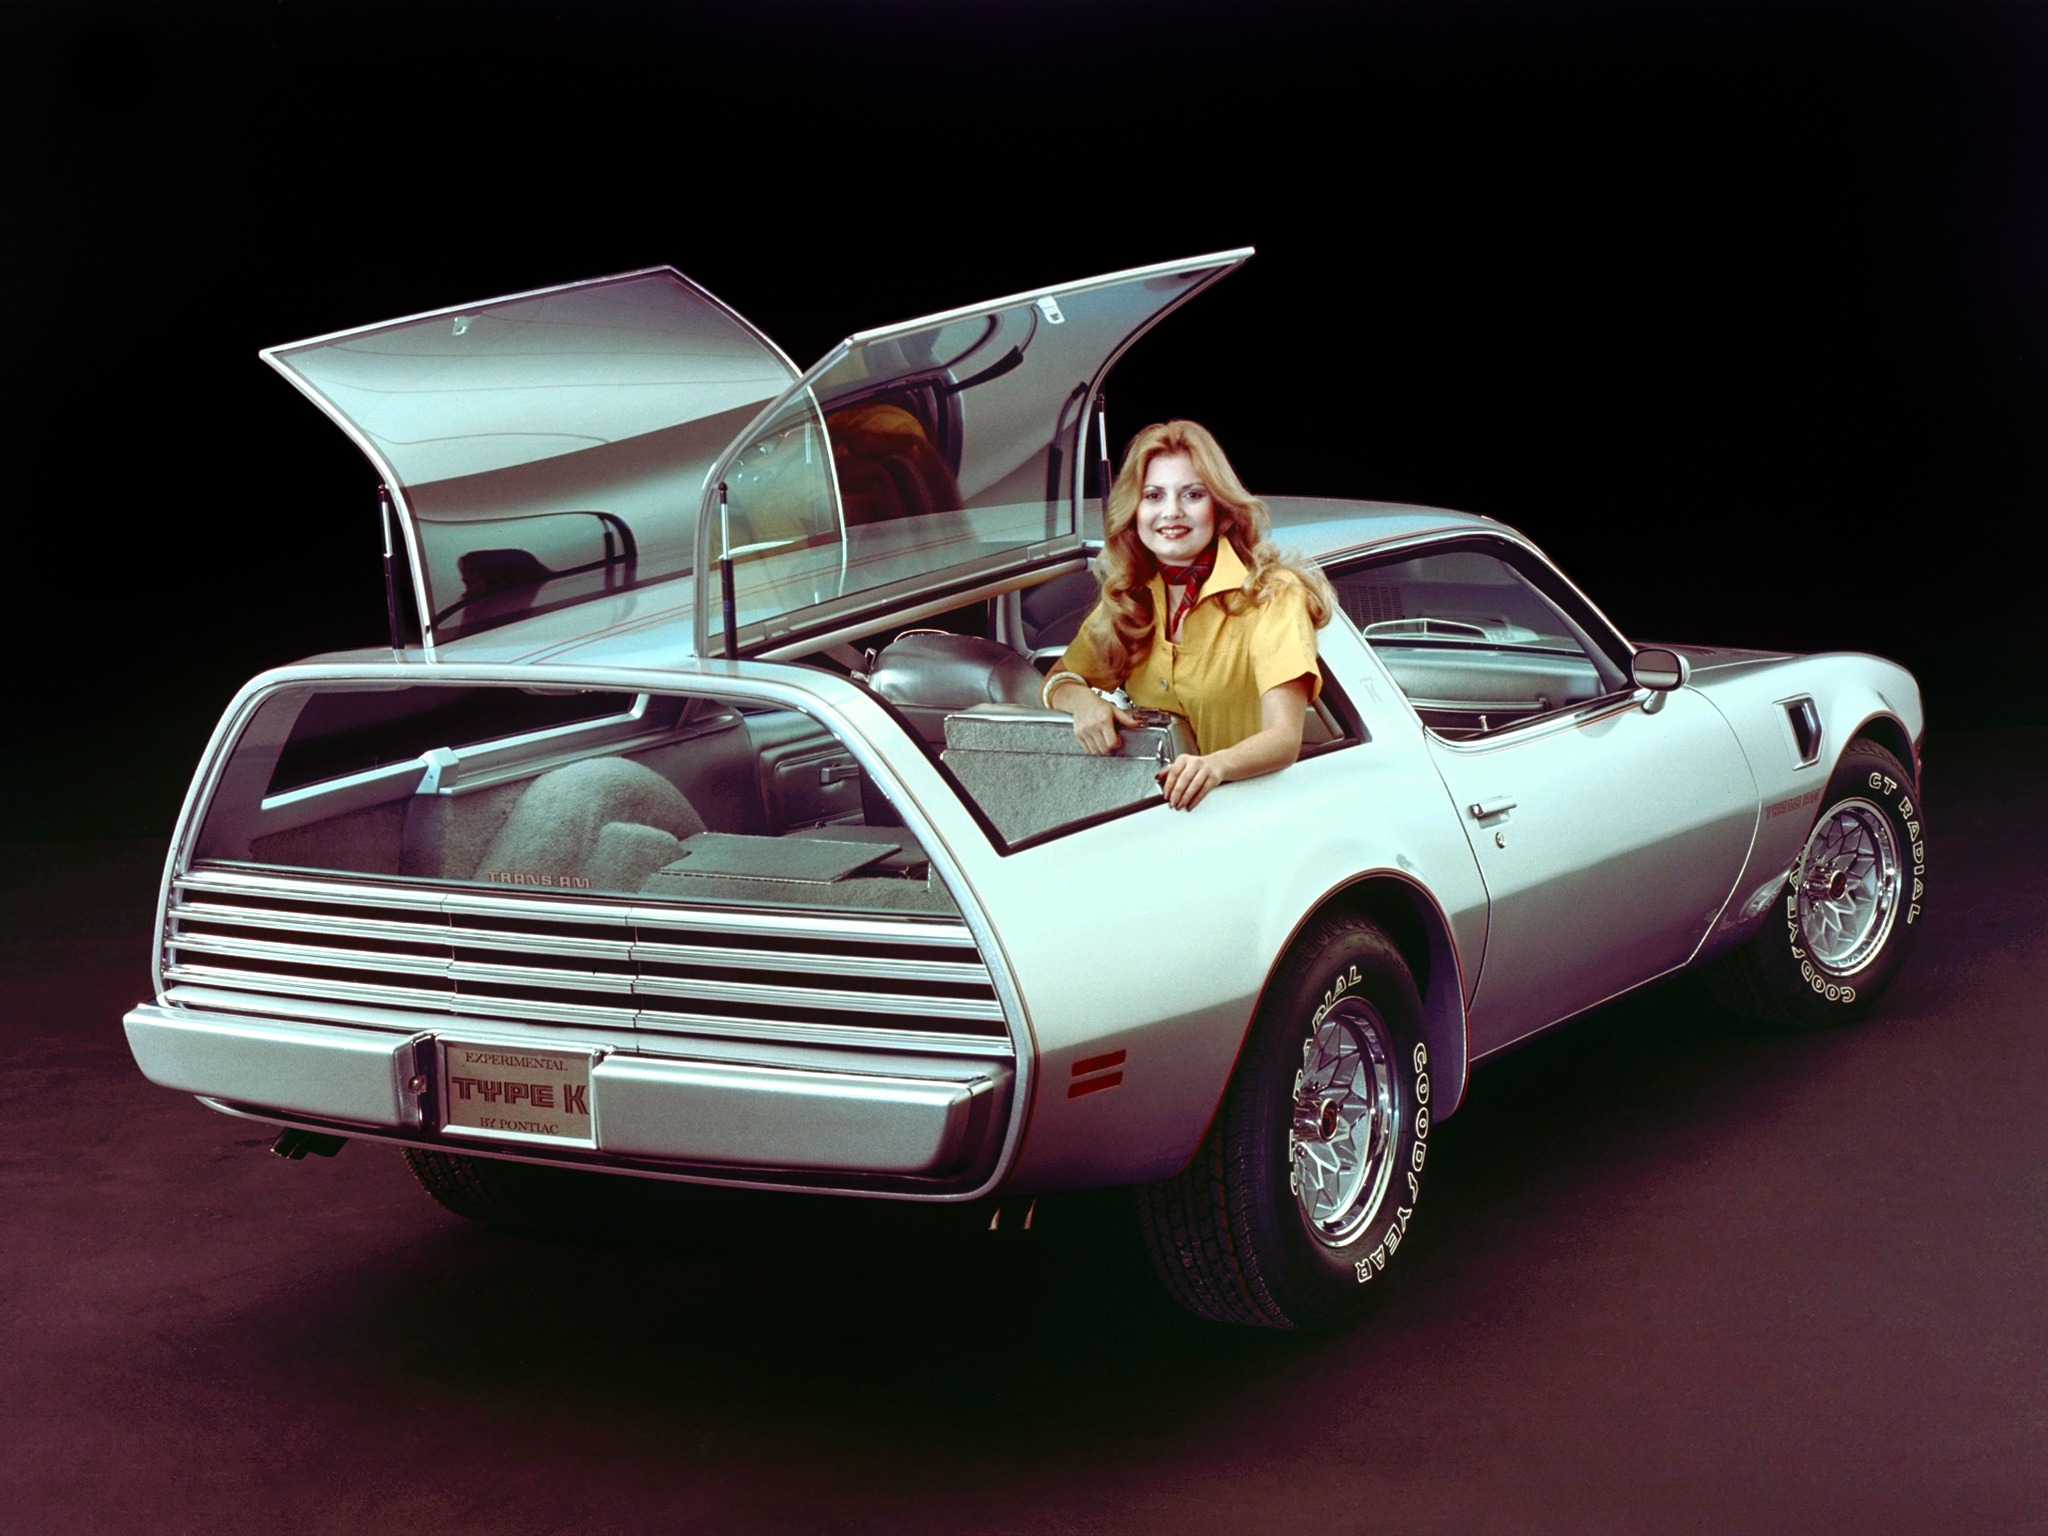 Pontiac Firebird Trans Am Type K Concept 1977 Old